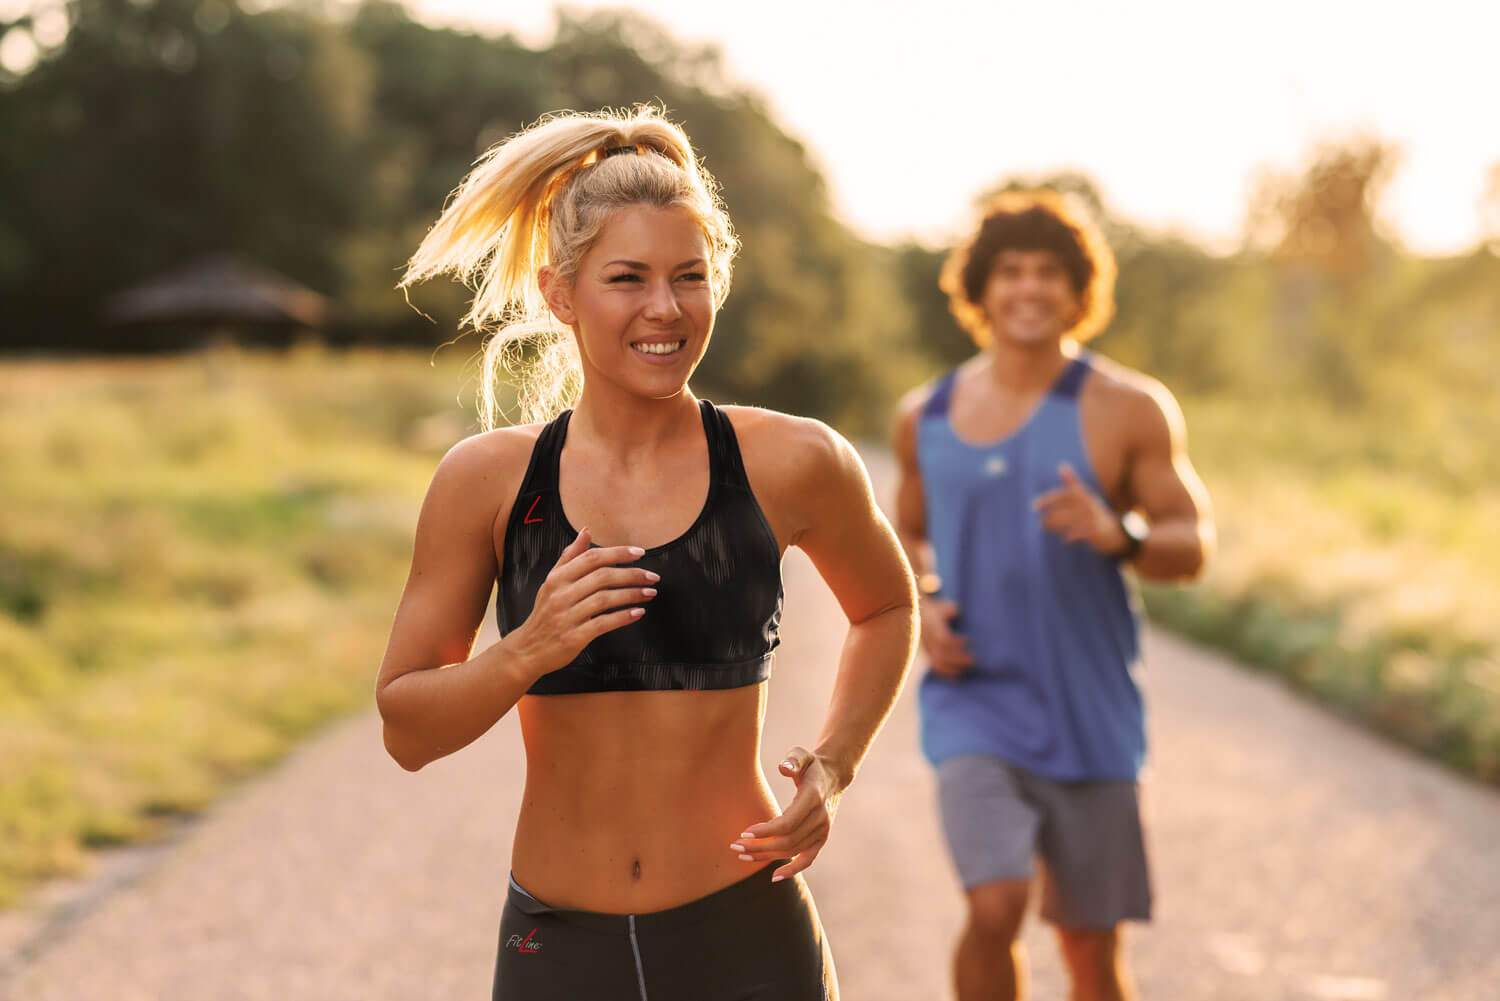 How to Stay Active During the Hot Summer Months